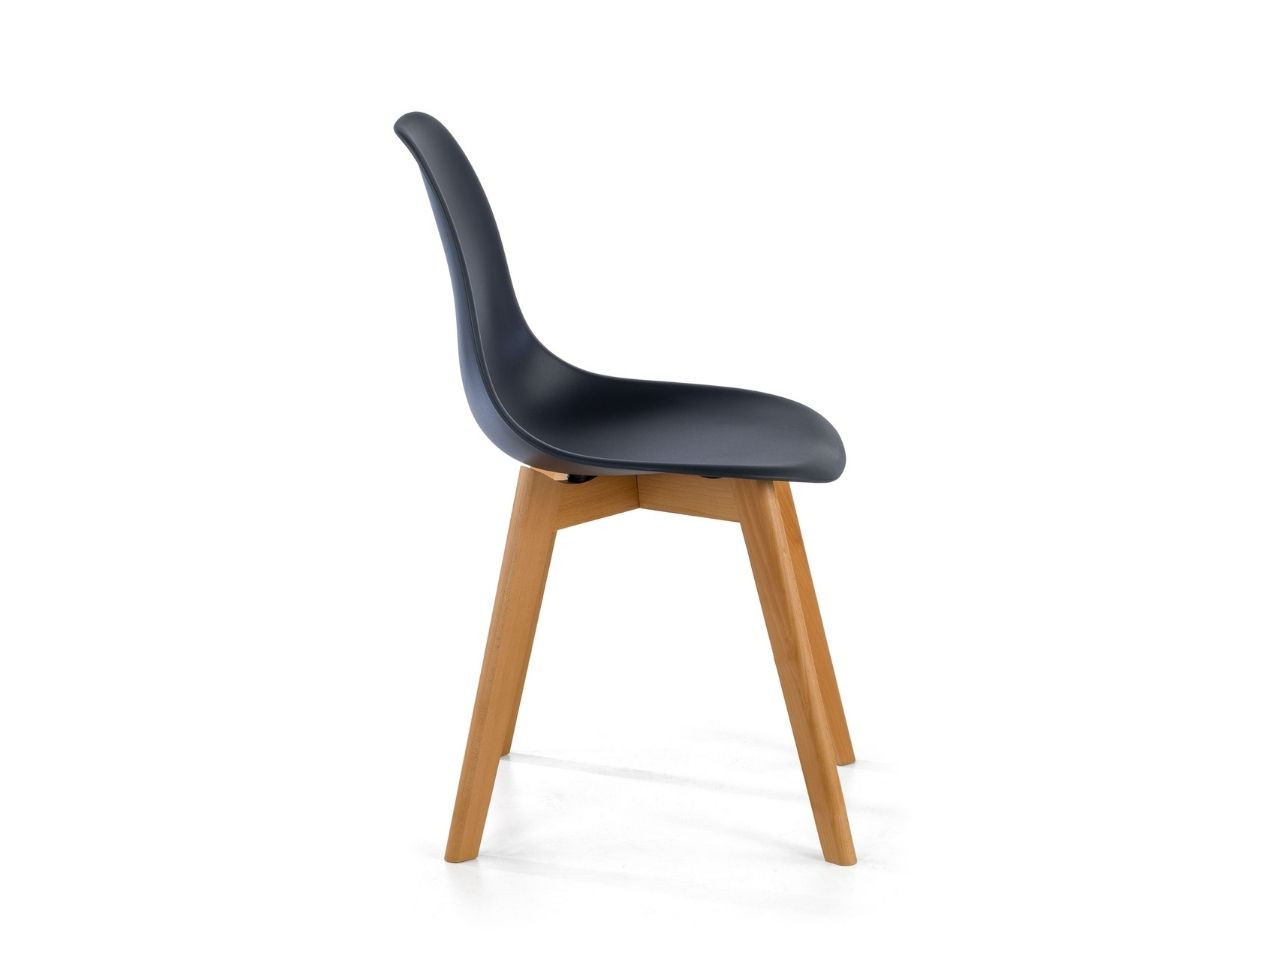 Sofas chaise longue baratos barcelona for Sofa cama chaise longue